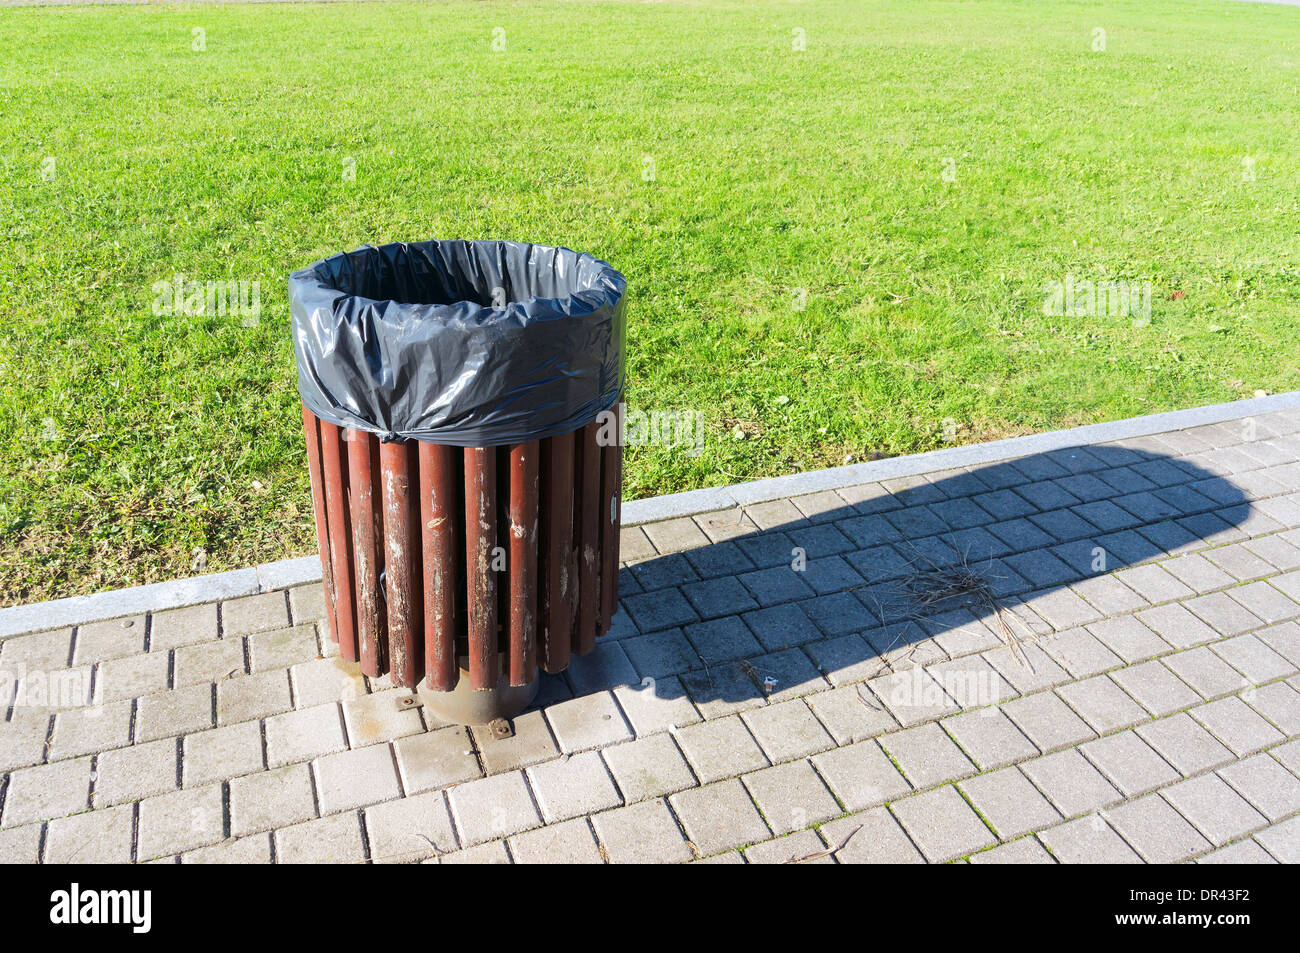 garbage can in a park - Stock Image